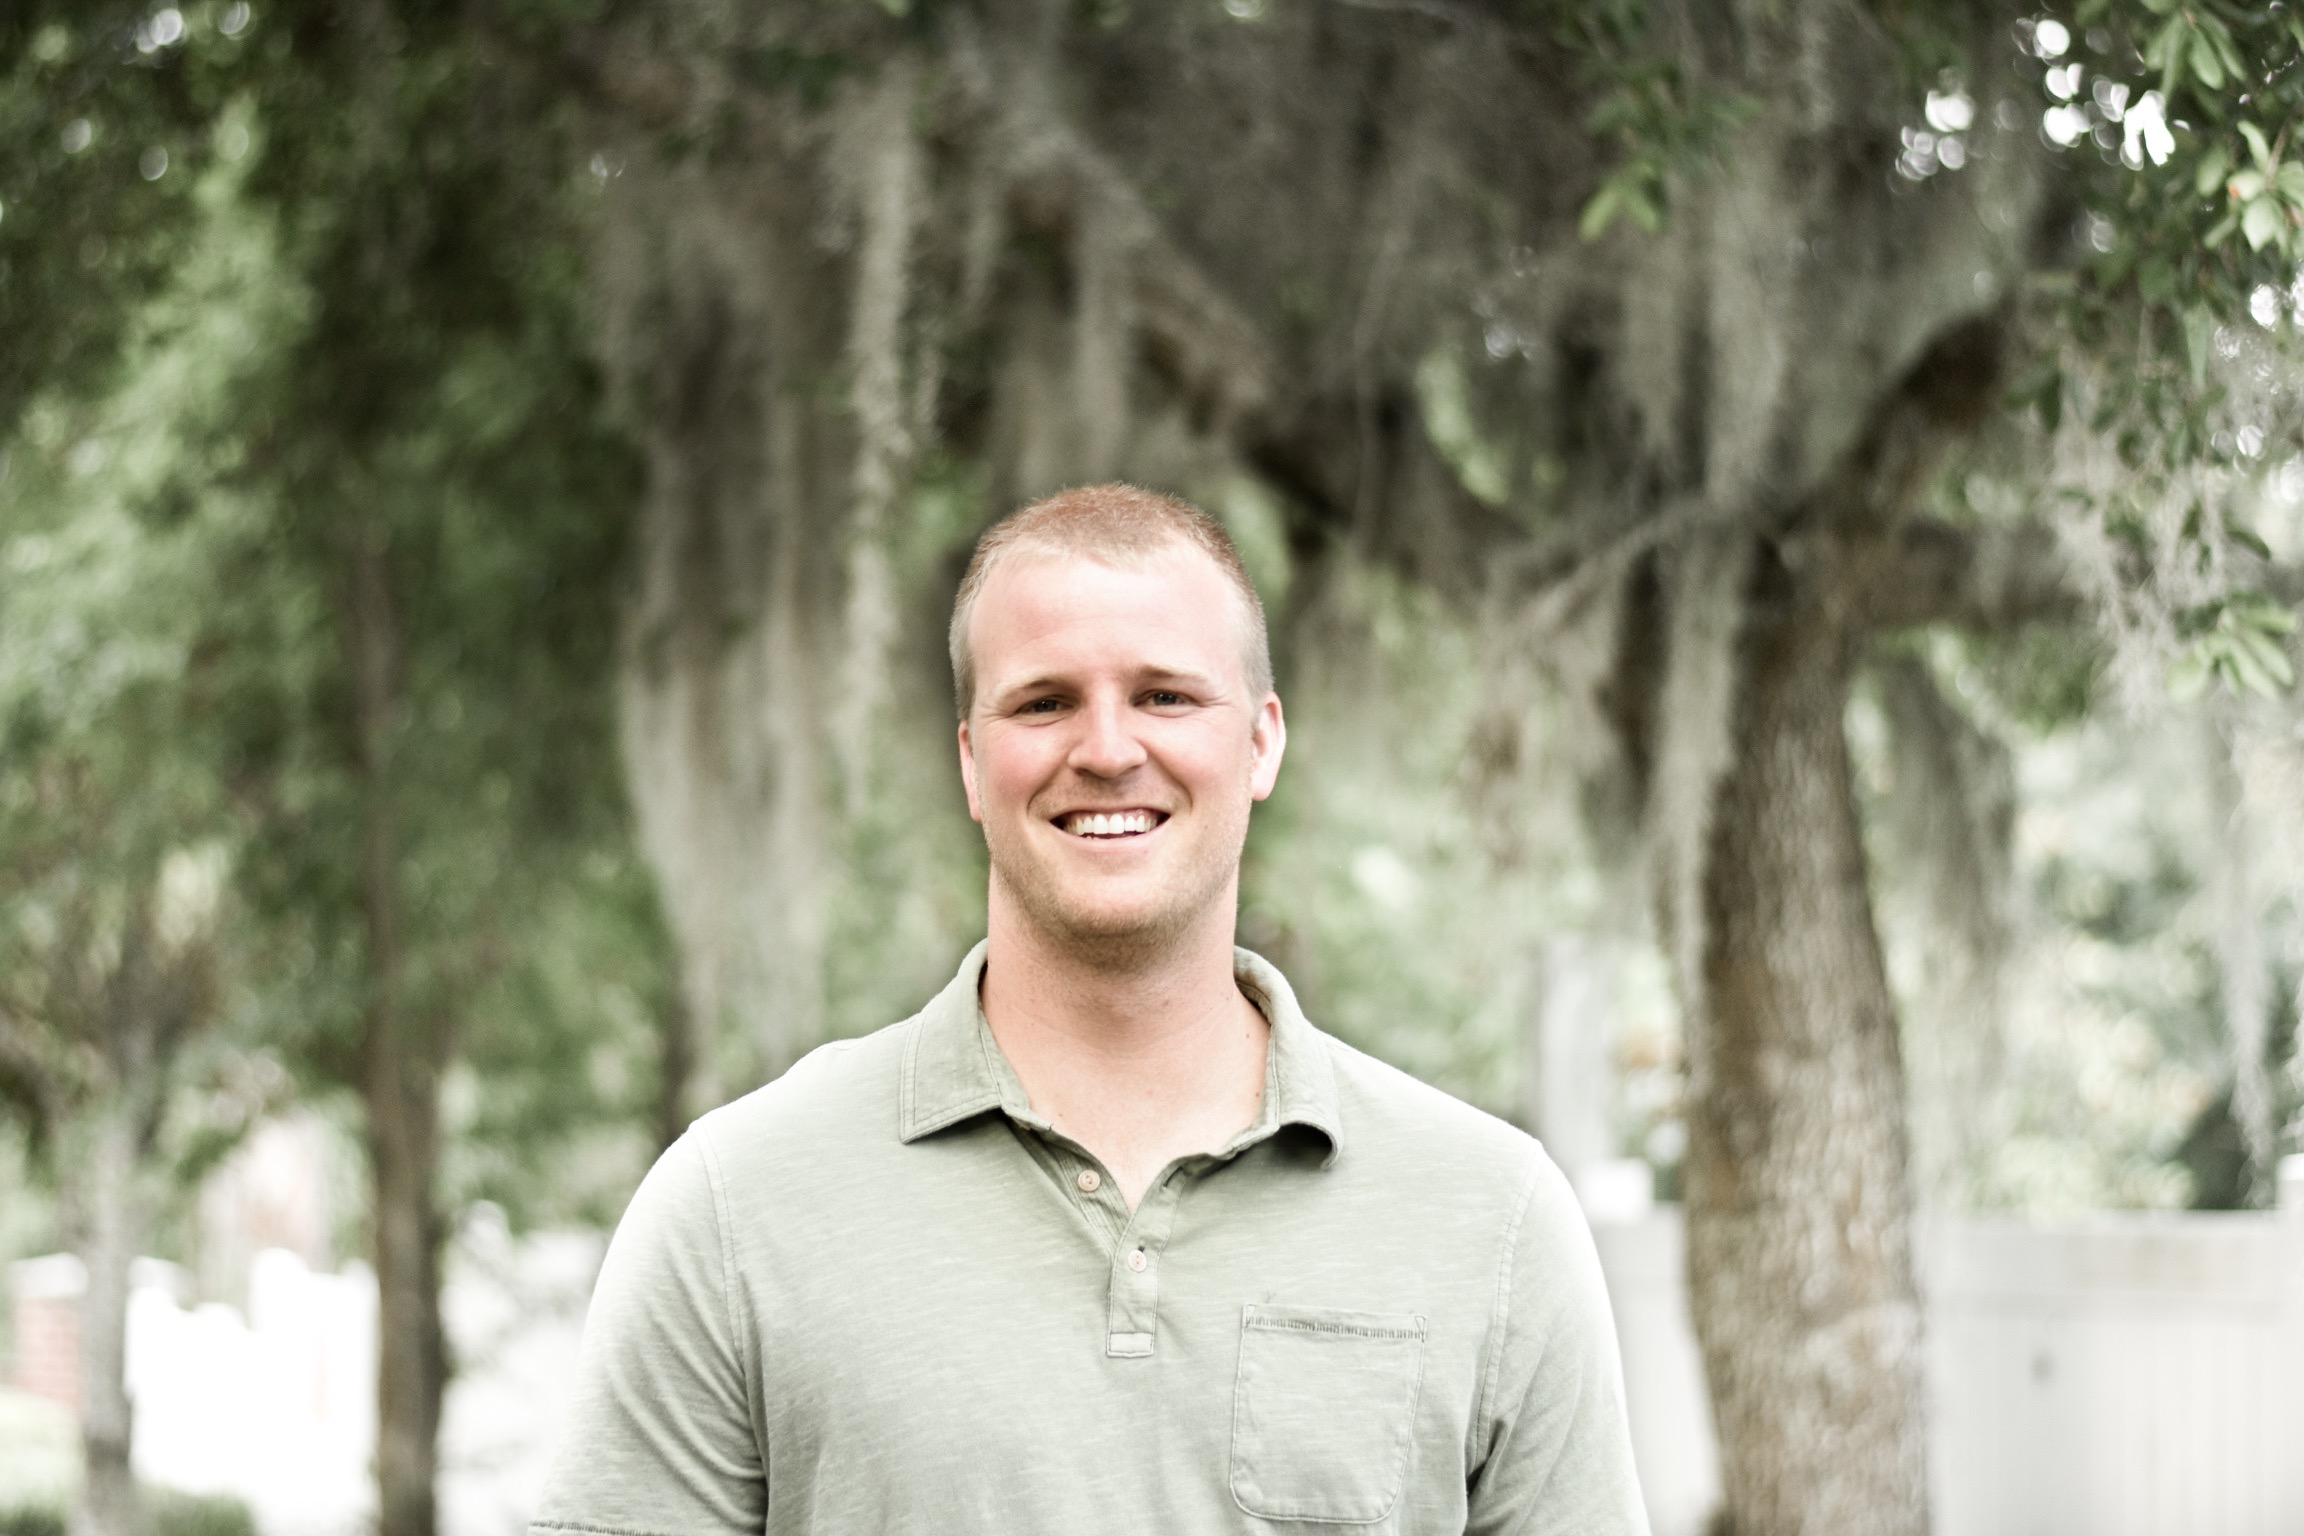 CLAY WILLIS - The Husband of the GCClay was born and raised in Destin, FL and moved to Gainesville to go to the University of Florida in 2009. He and his wife, PJ, have been married since December 2013 and have two daughters, Lynnlee and Audree. He has been teaching ESE (special education) high schoolers for three years and referees basketball and football on the side. Clay is passionate about athletics, mentoring young people to fulfill God's calling on their life, and going on adventures. He loves his girls, the outdoors, and spending time with friends and family.